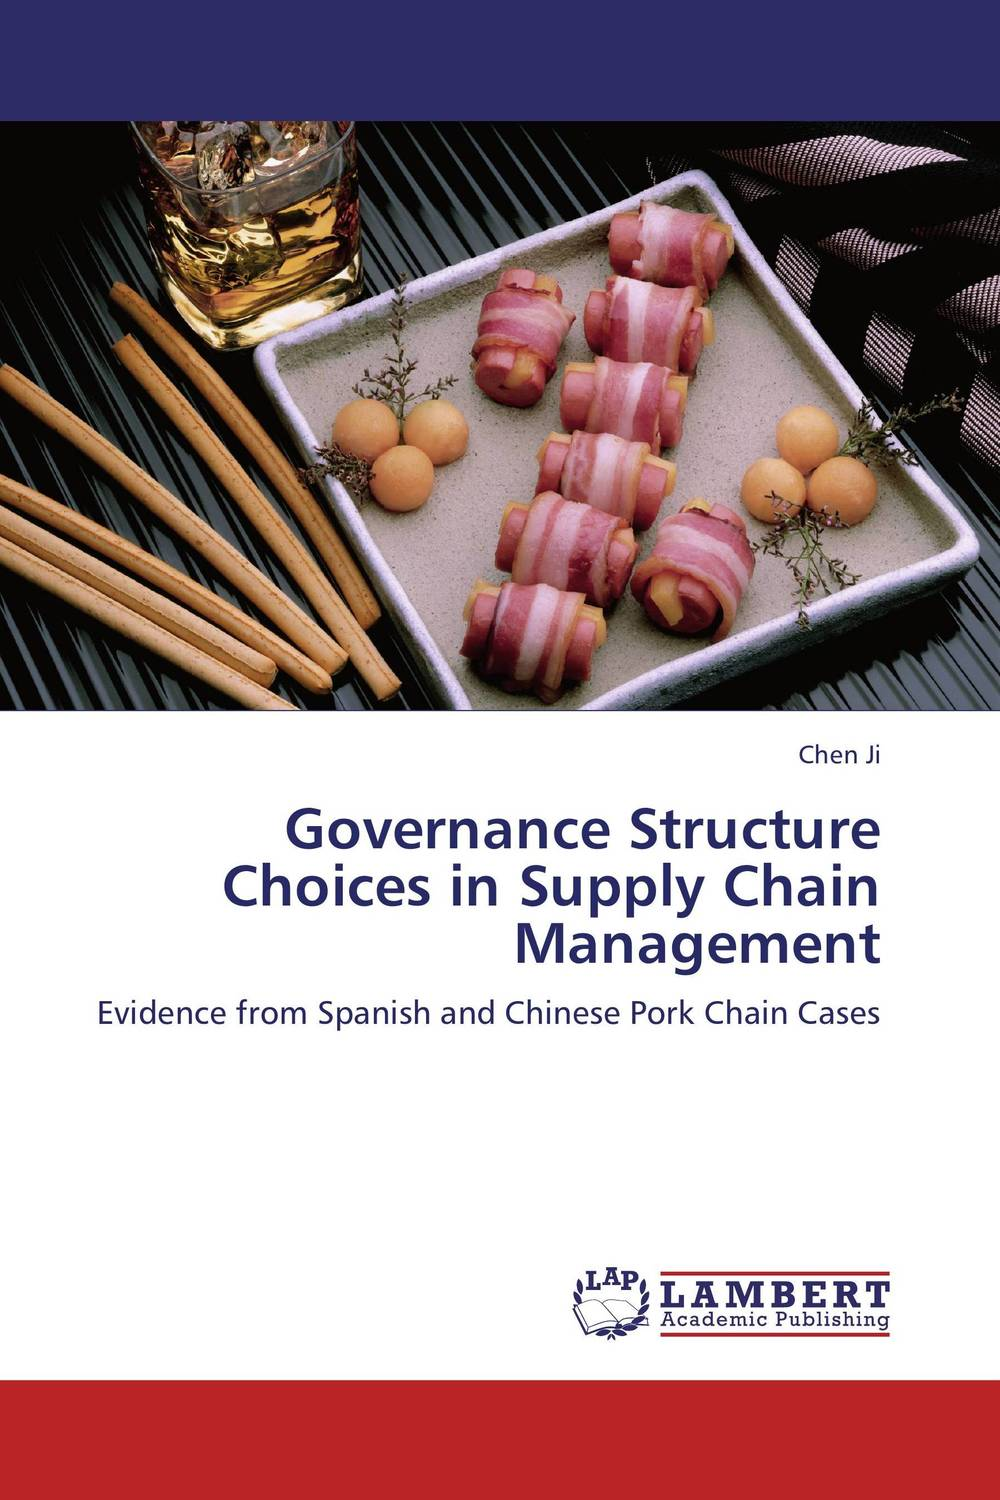 Governance Structure Choices in Supply Chain Management майка борцовка print bar flash